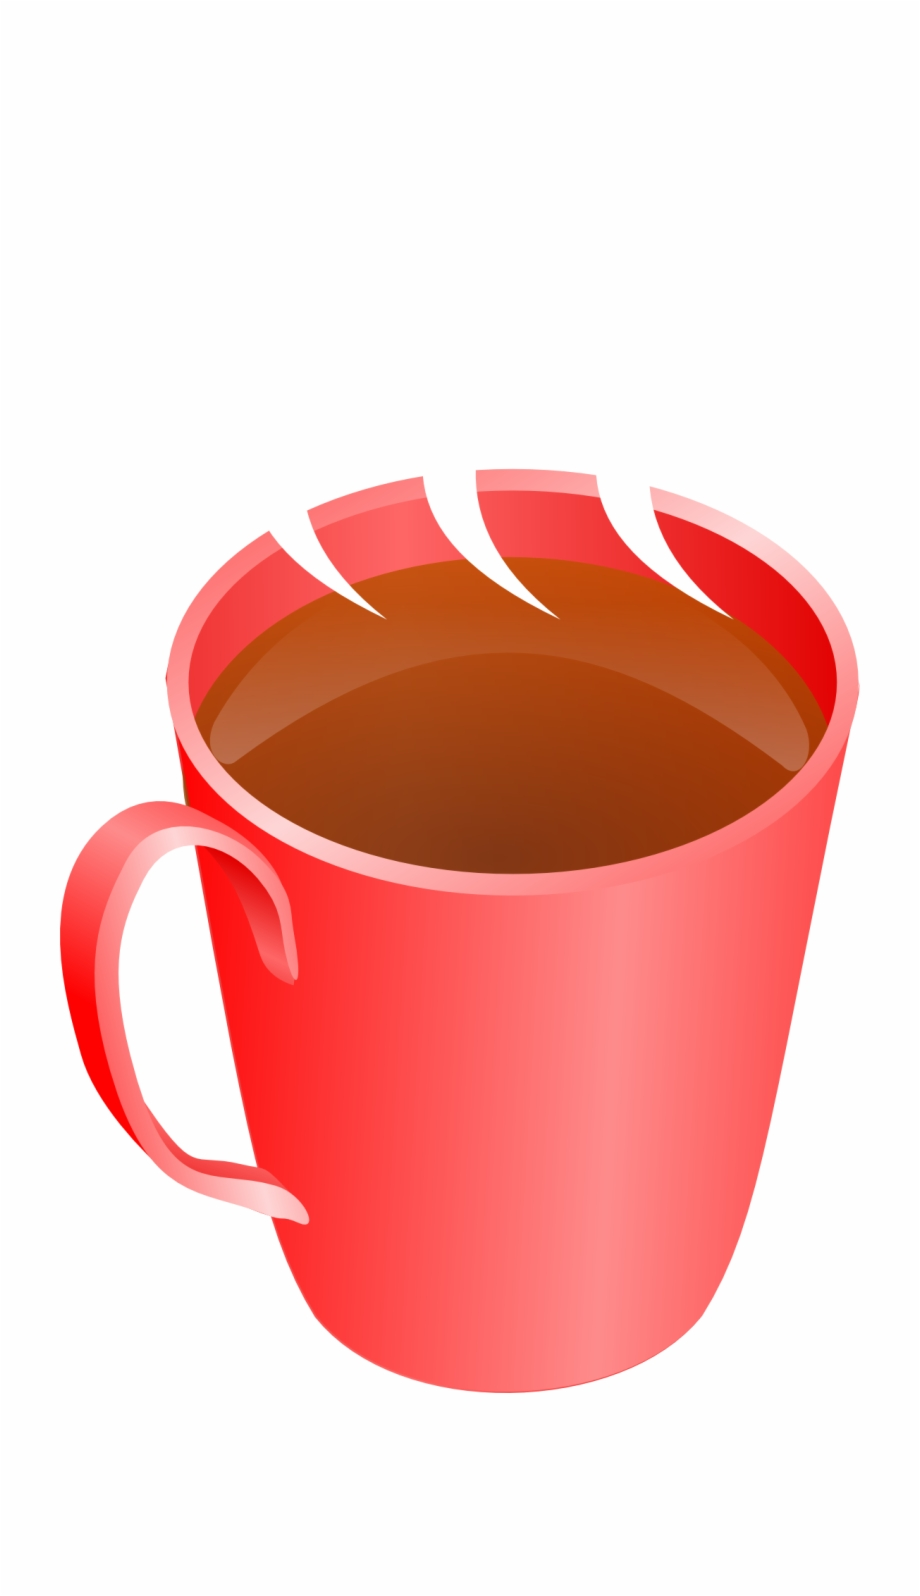 Clip Royalty Free Hot Chocolate Mug Clipart.